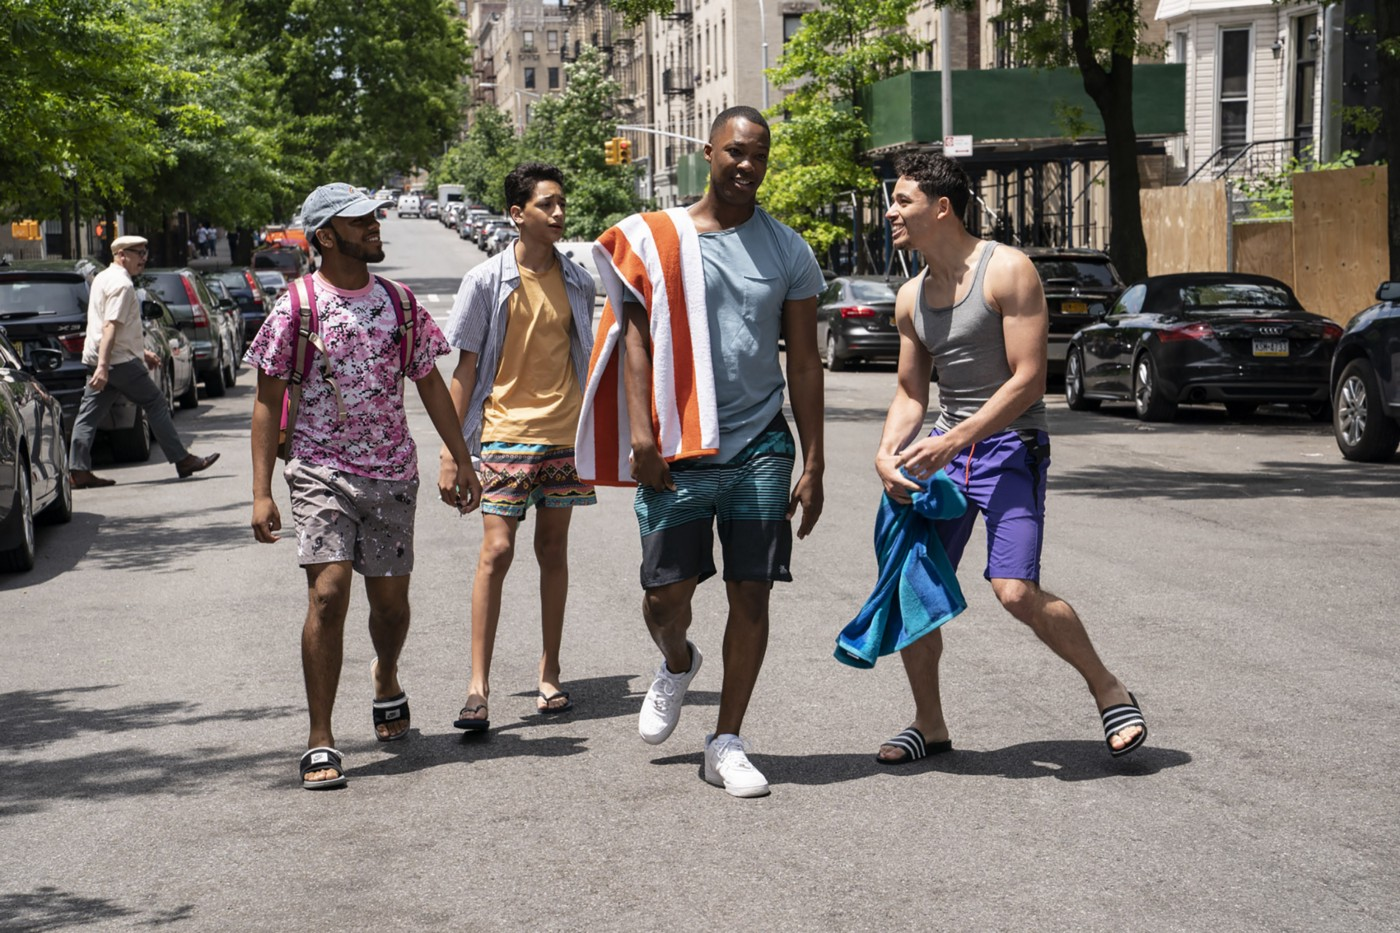 A scene from In The Heights featuring several characters standing on a road.